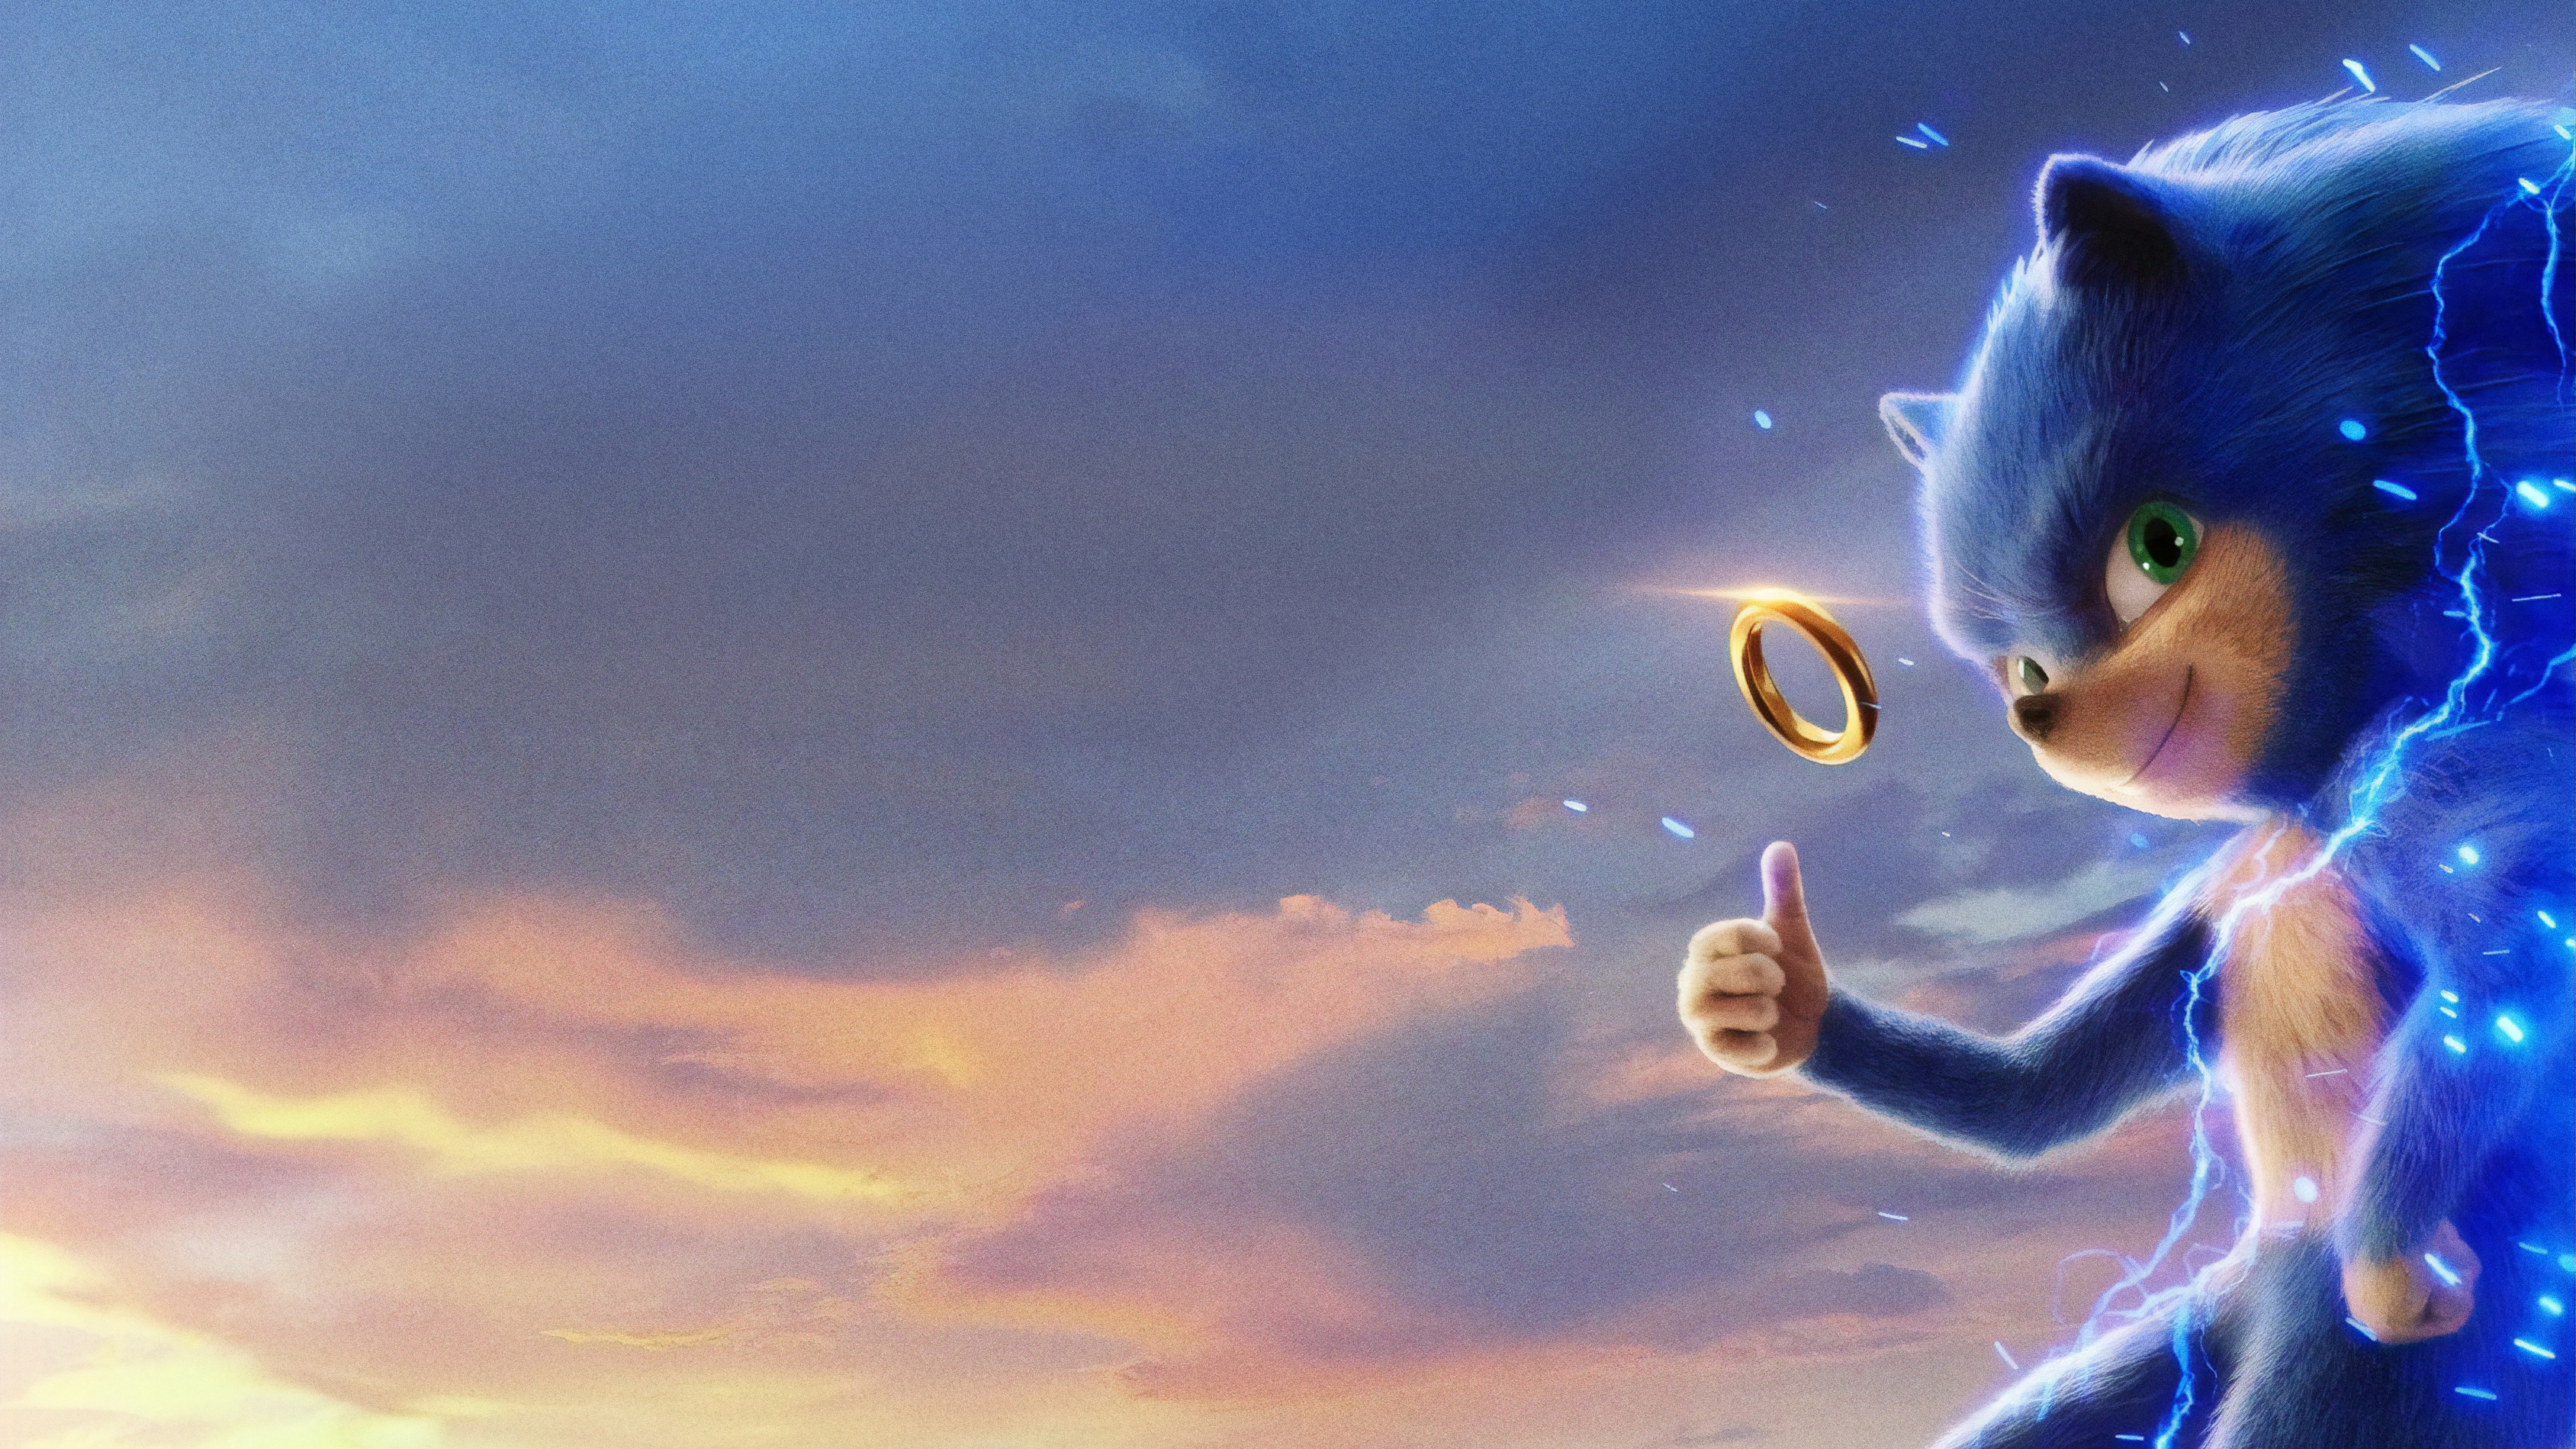 Movie Poster 2019: Sonic The Hedgehog 2019 Movie 4k, HD Movies, 4k Wallpapers